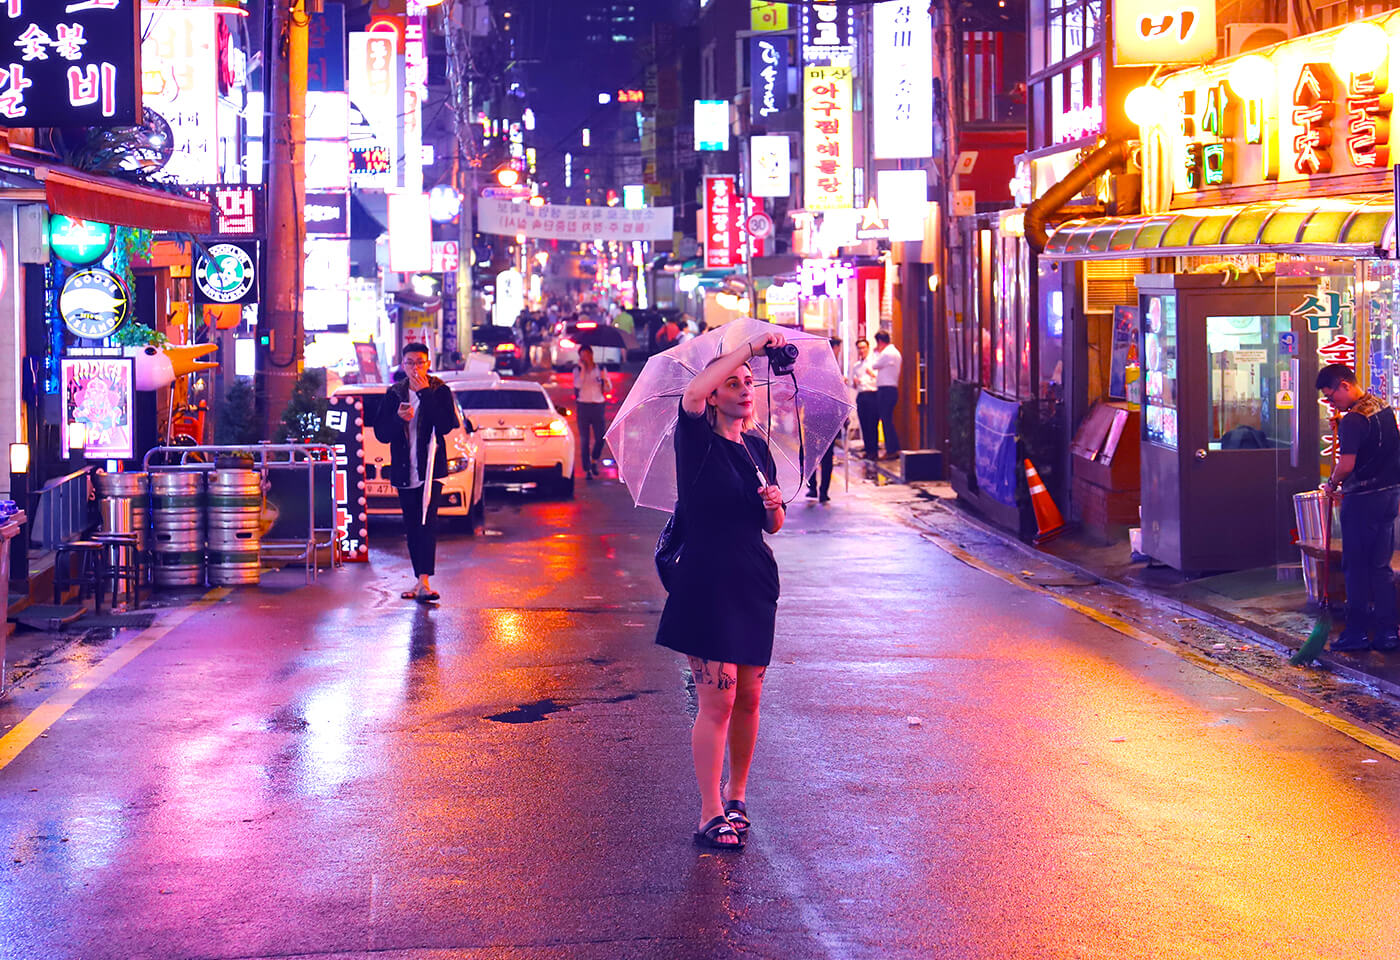 Angela with umbrella on streets of Korea